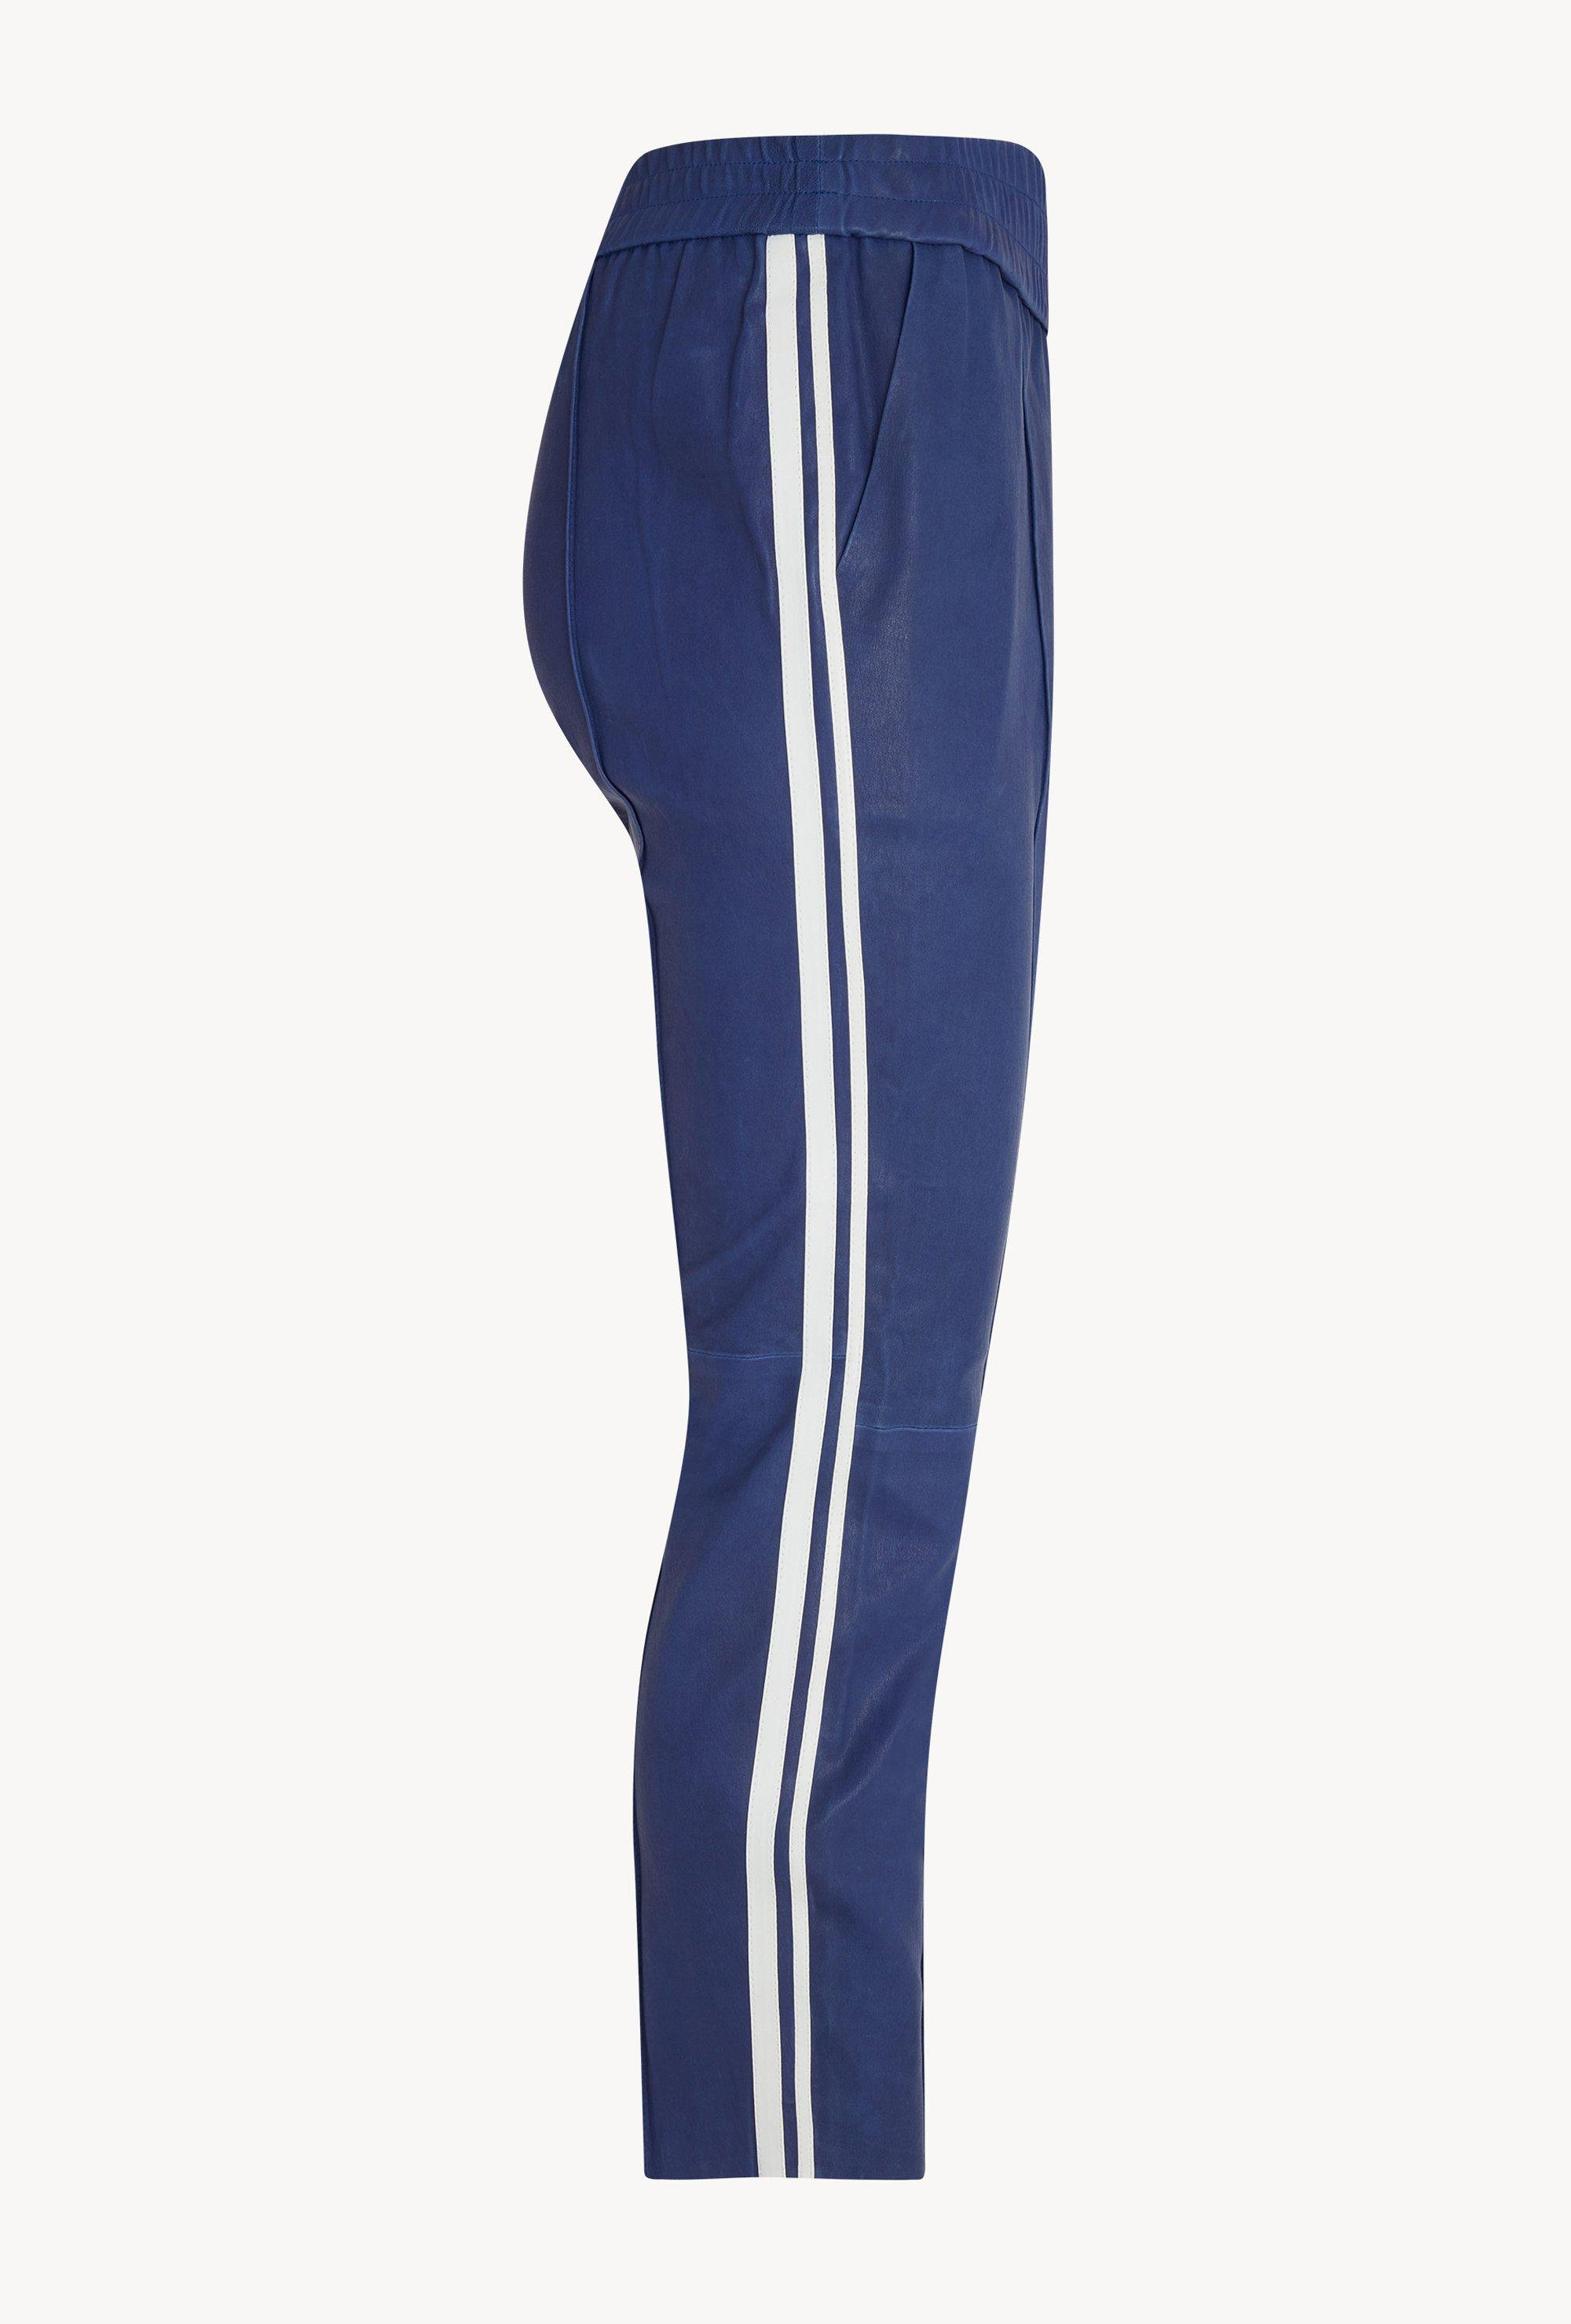 Electric Blue Athletic Slim Fit Leather Joggers 2